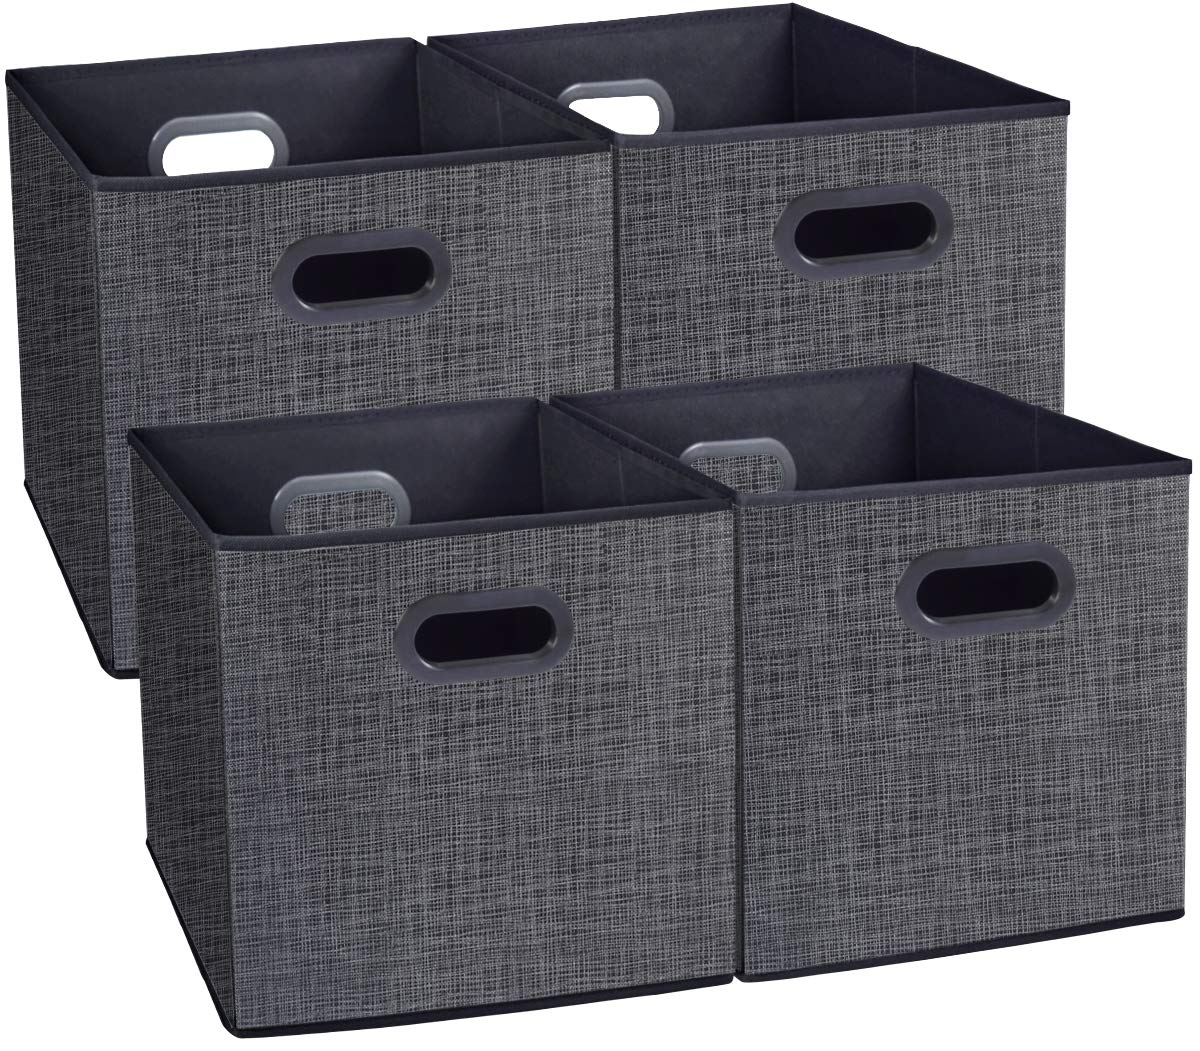 Cloth Storage Bins Cubes Boxes Fabric Baskets Containers,Foldable Closet Shelf Nursery Drawer Organizer for Clothes,Home,Office, Bedroom with Plastic Handles Set of 2 Grey Large(12x12x12 in) homyfort